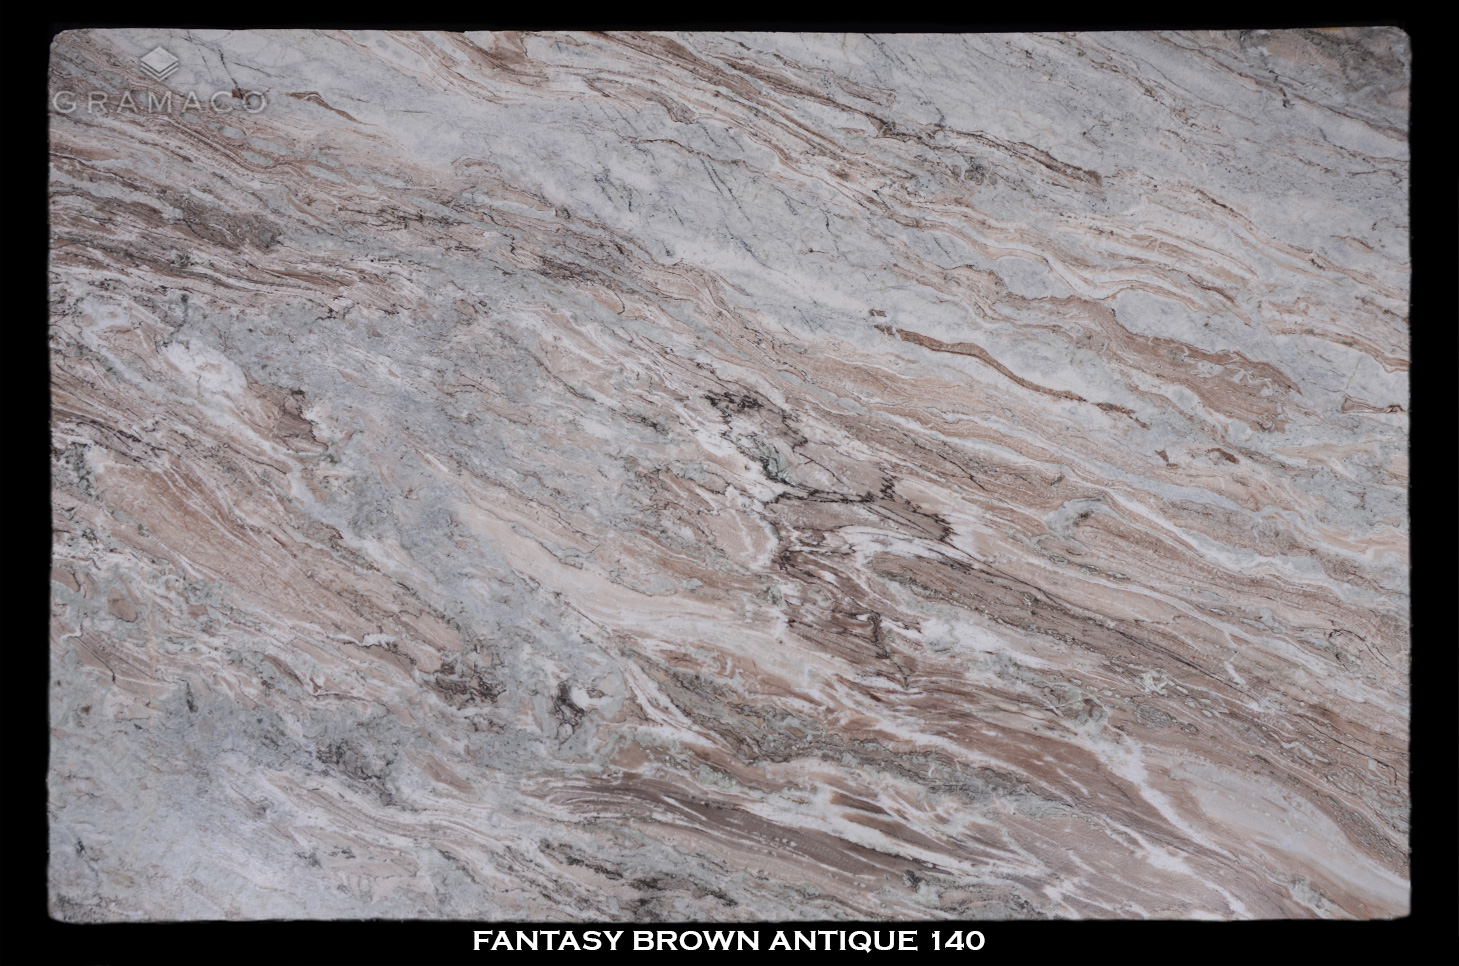 FANTASY-BROWN-ANTIQUE-140---FULL-SLAB-BLACK